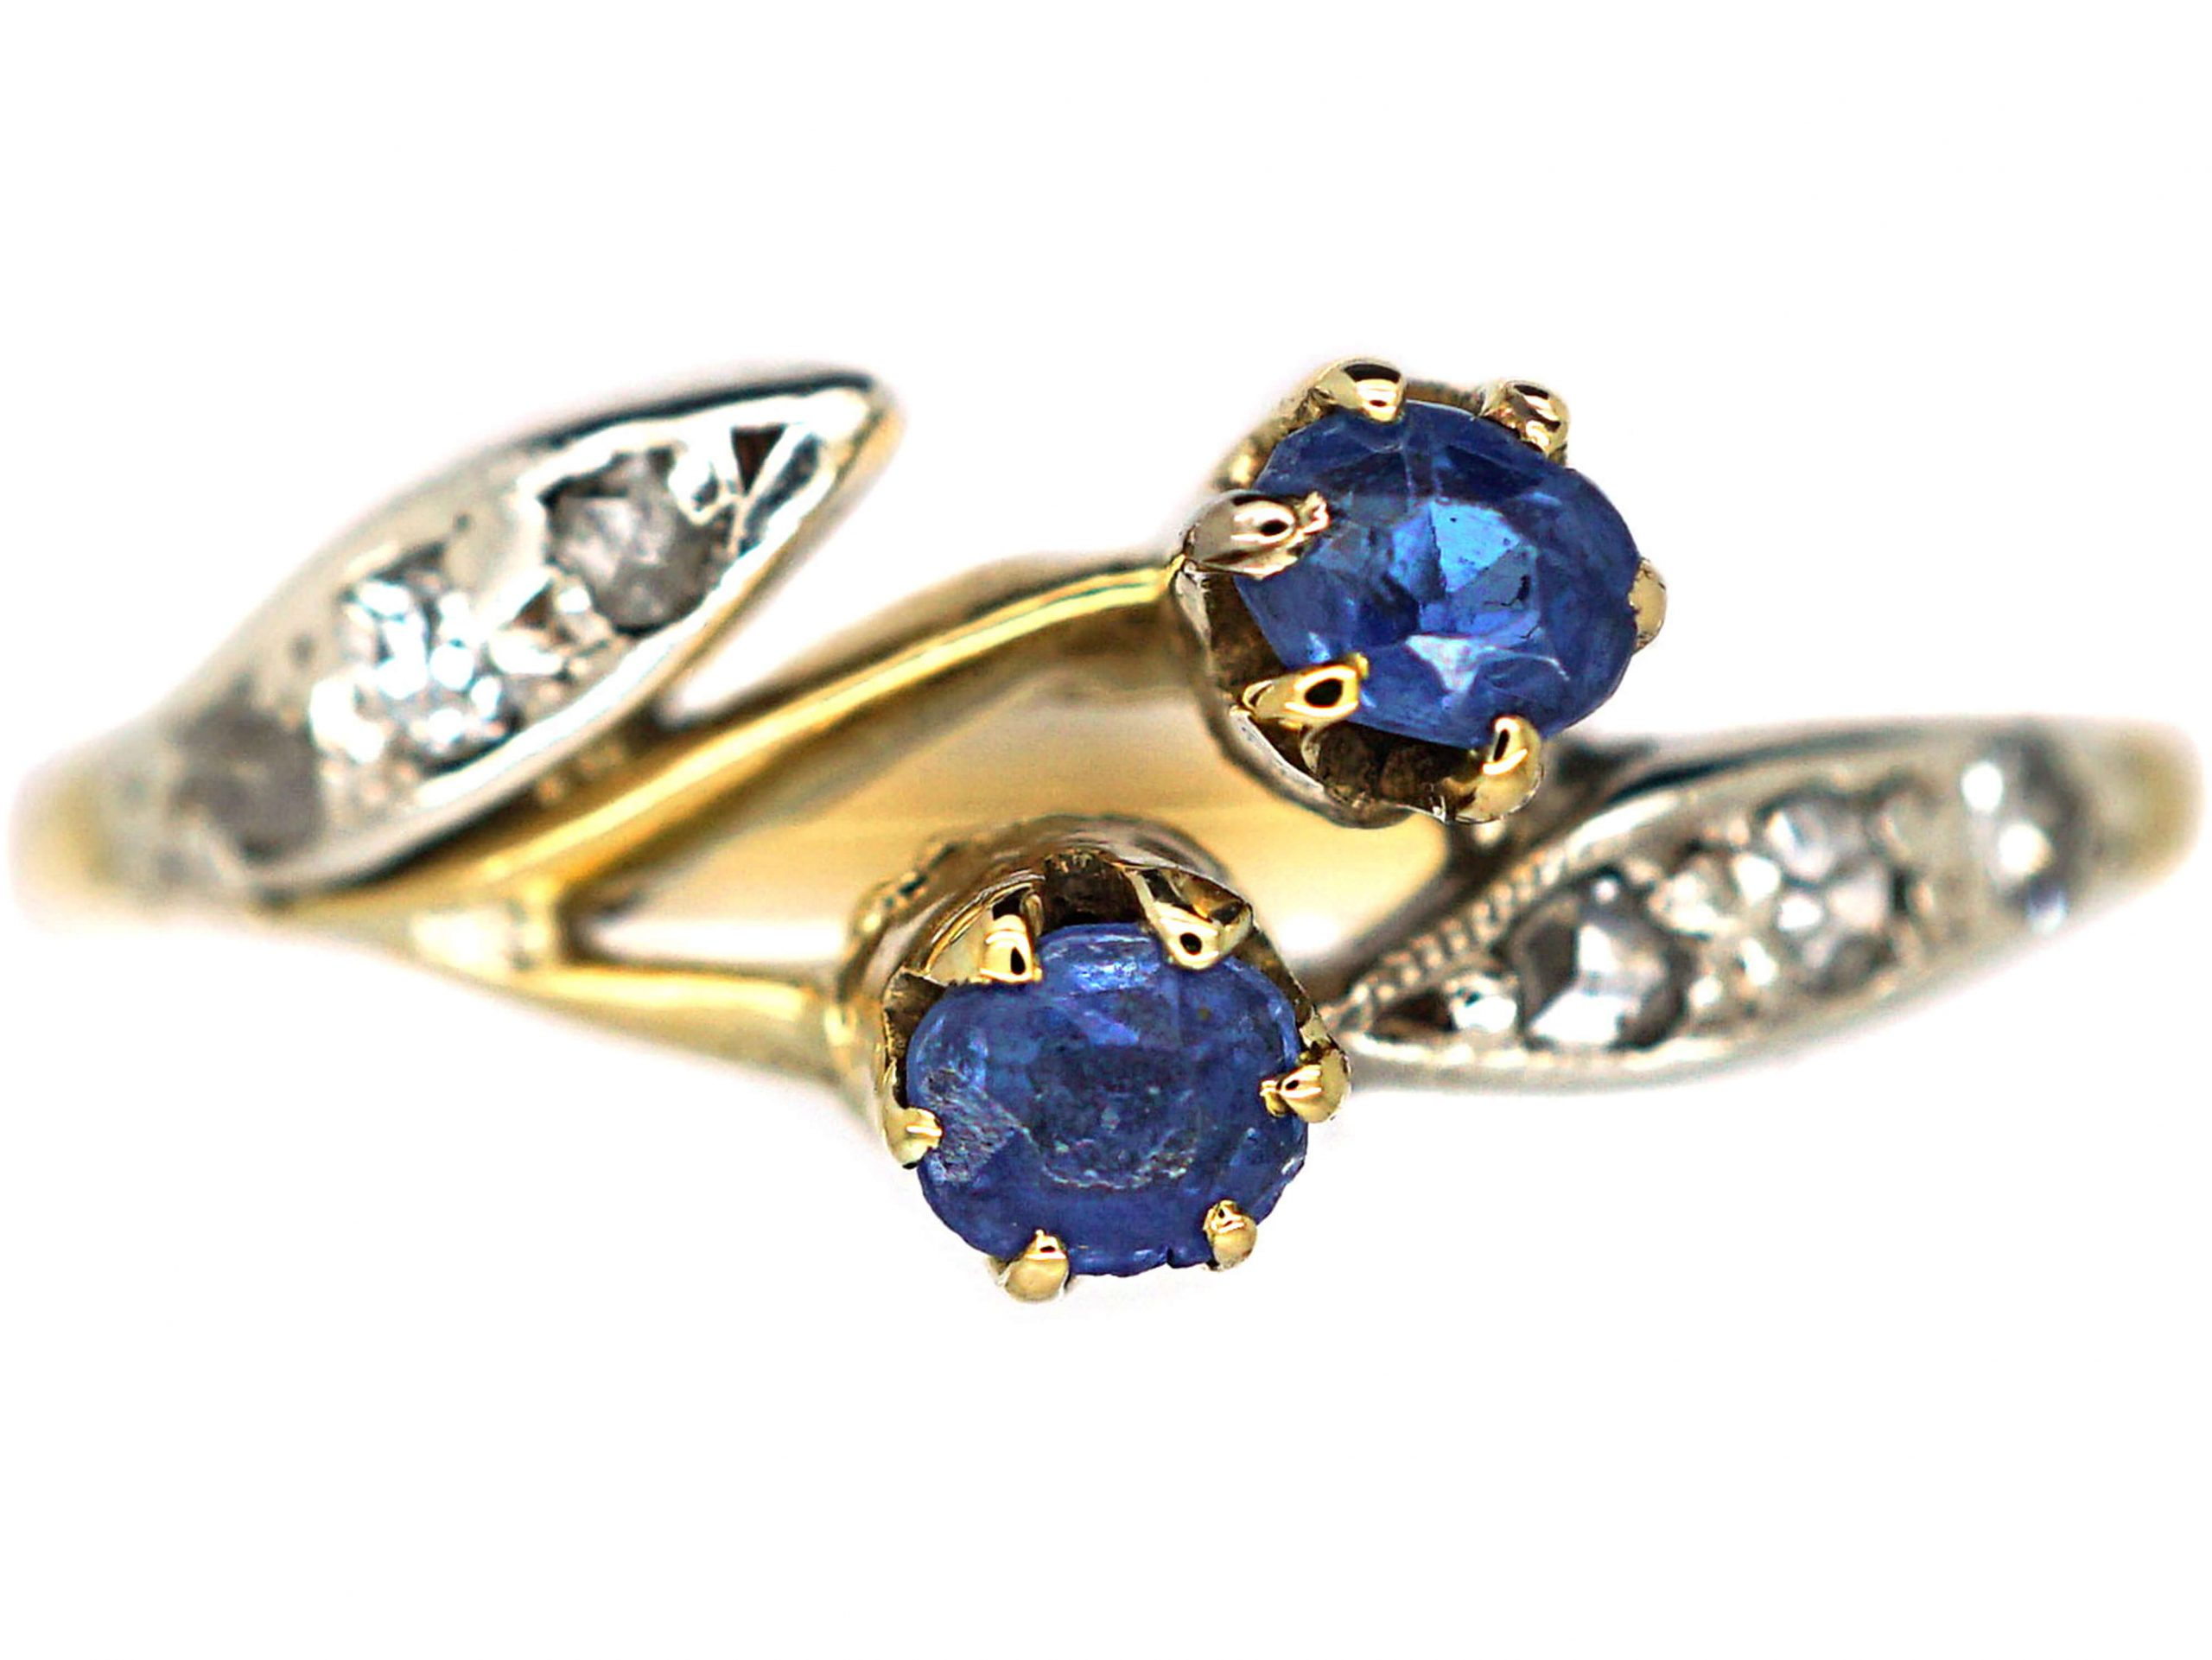 Art Nouveau 18ct Gold & Platinum, Sapphire & Diamond Ring